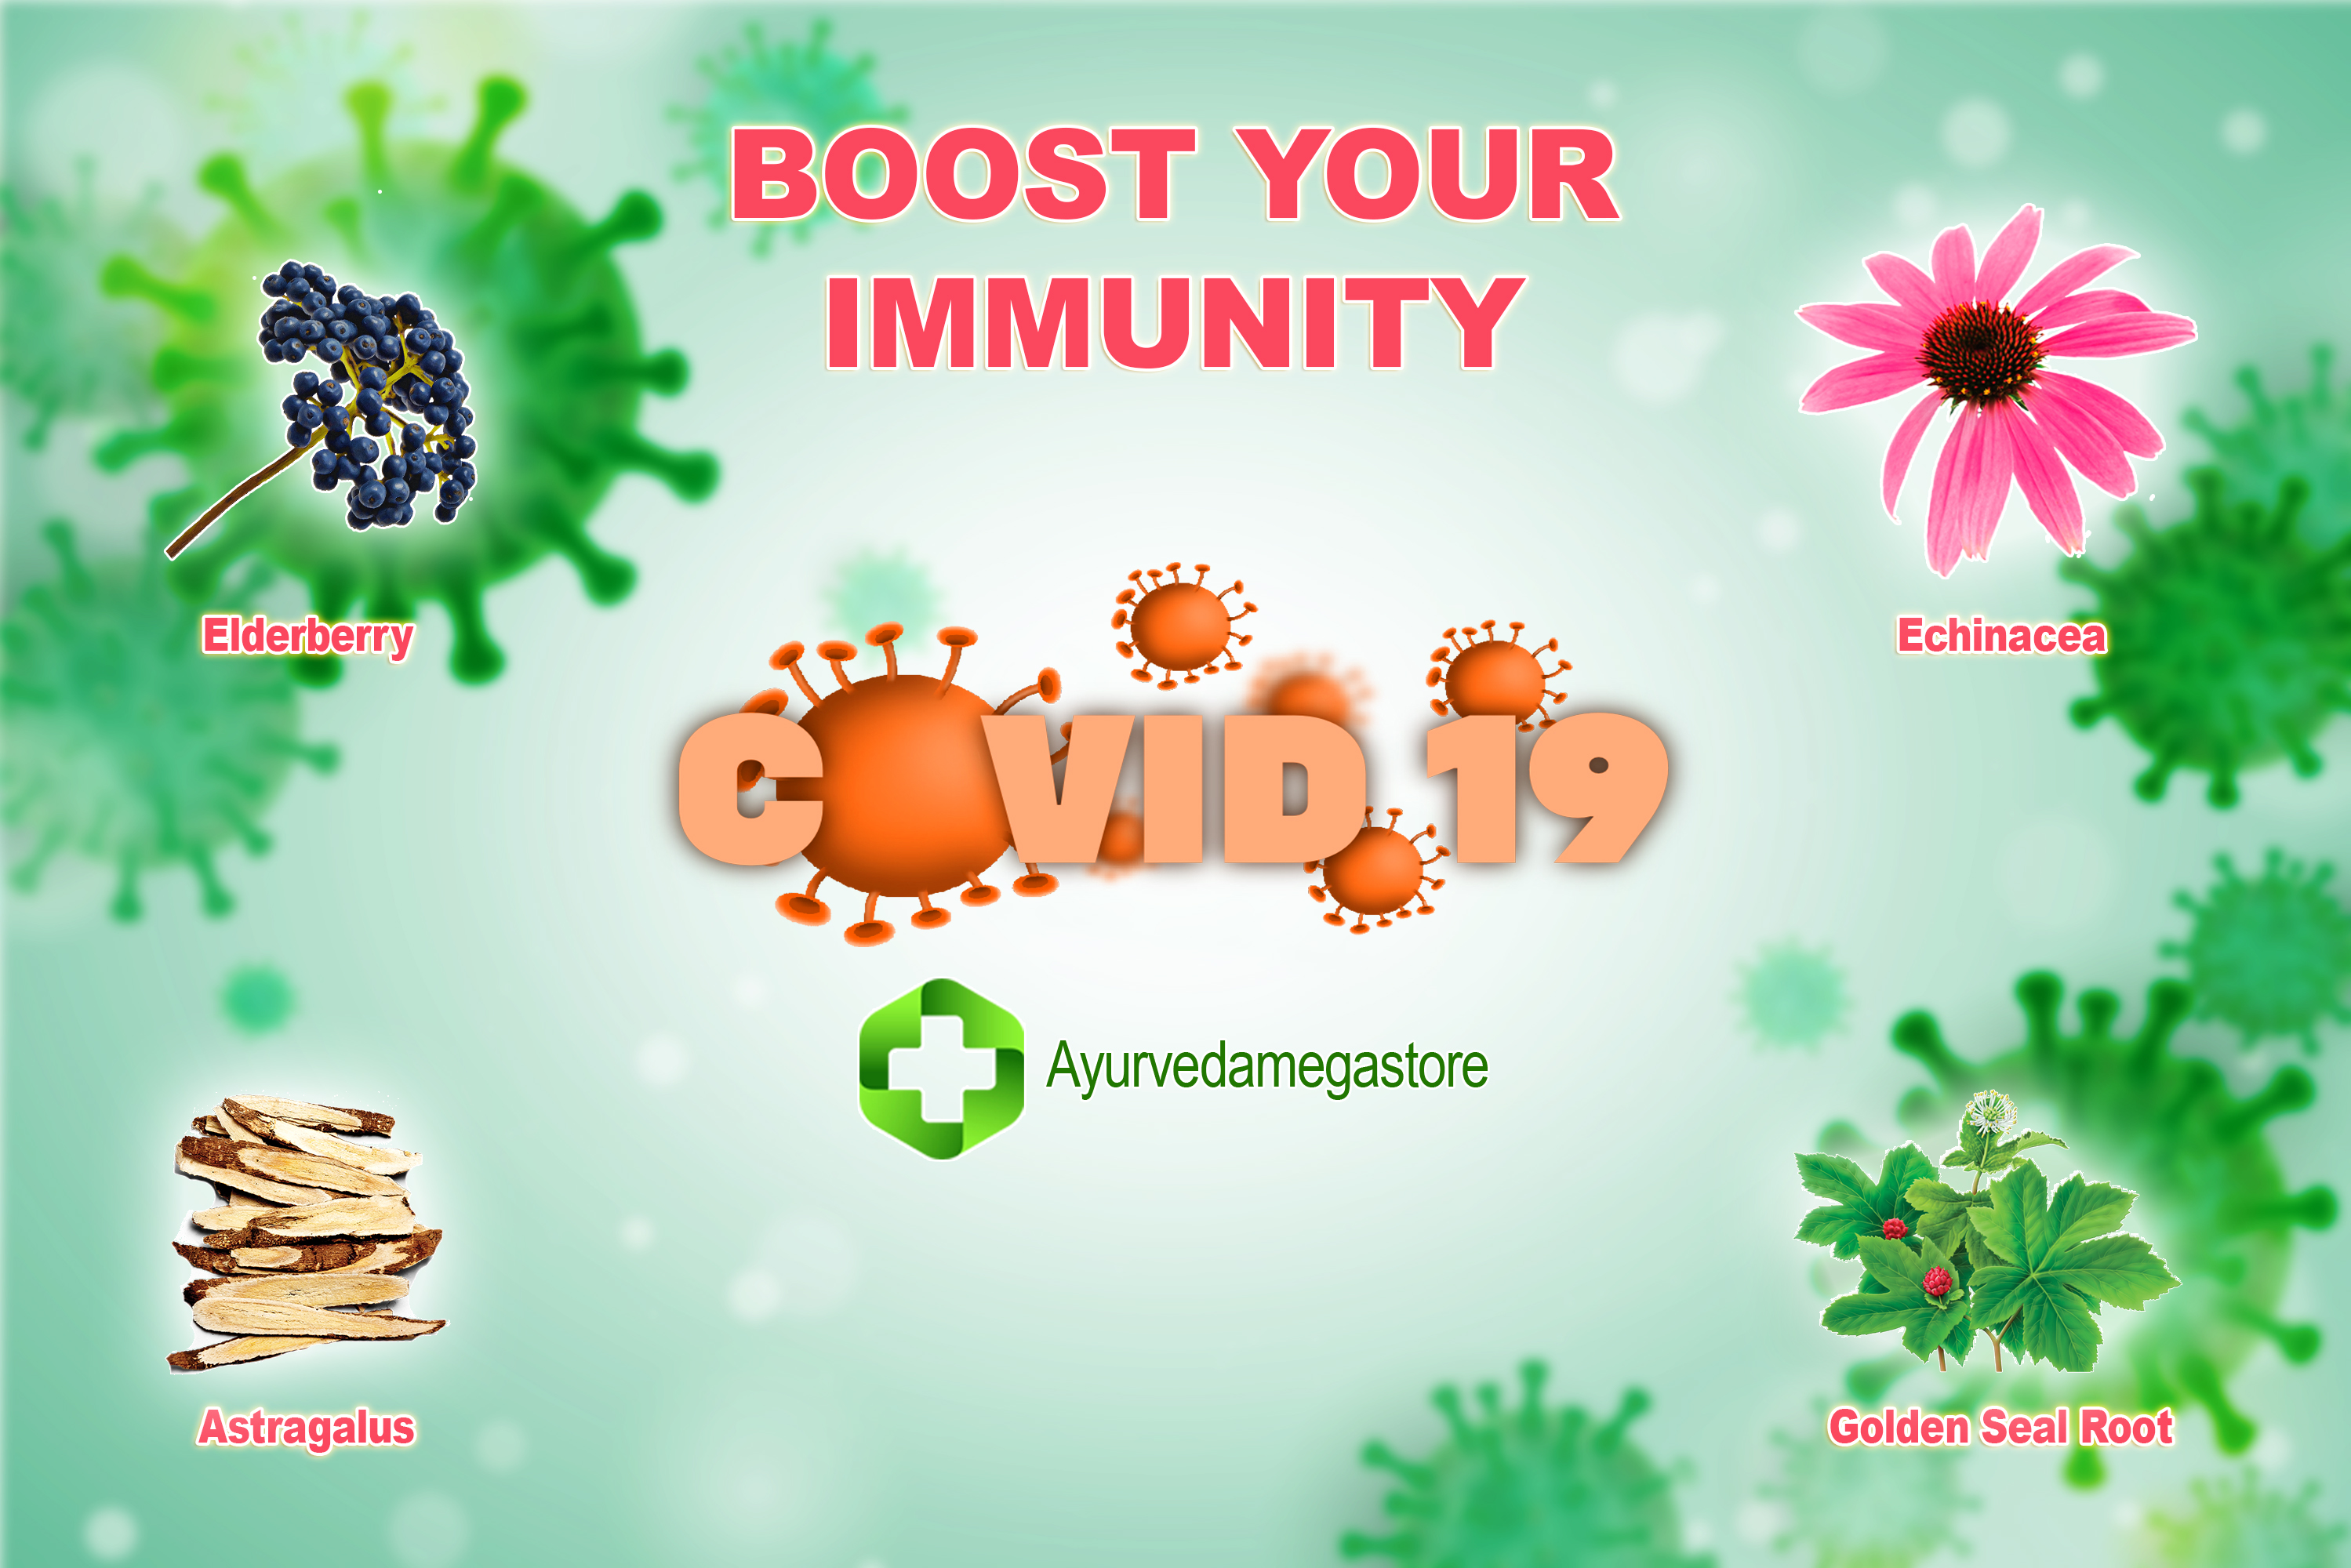 Enhance Winter Immunity And Protect Yourself From Coronavirus